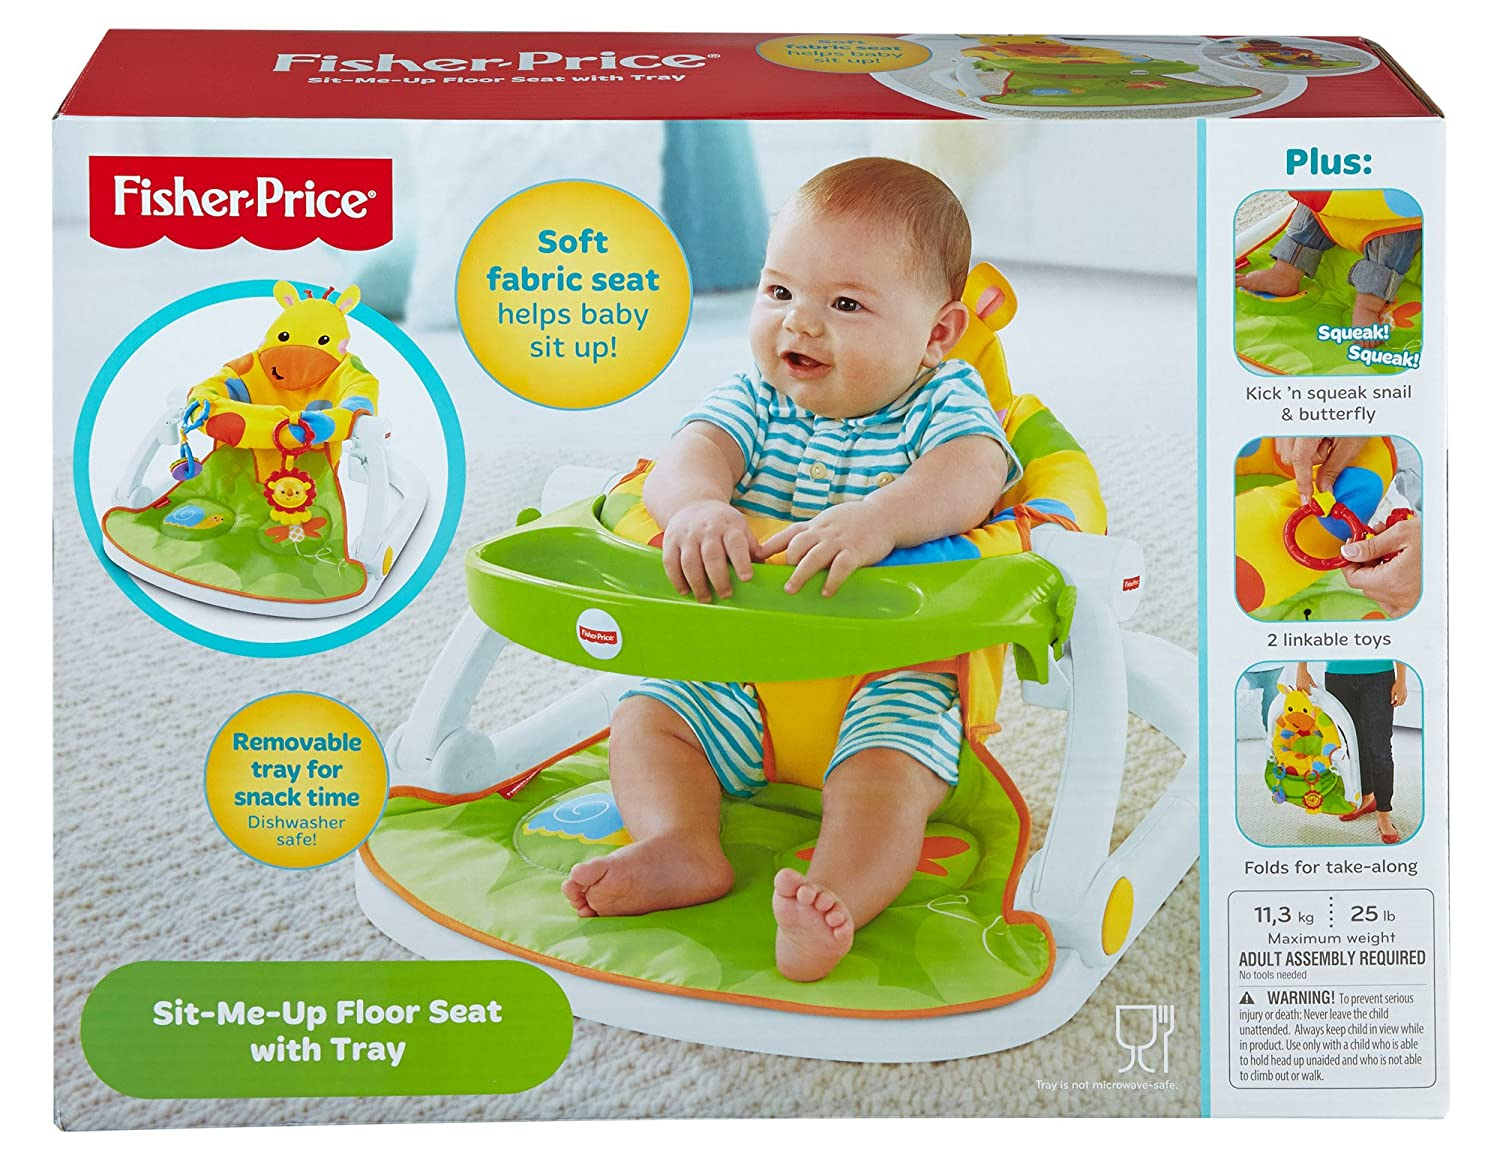 Amazon.com  Sit-me-up Floor Seat With Tray (giraffe) - Djd81 - Fisher-price - Mattel - Wrap--t24  Baby  sc 1 st  Amazon.com & Amazon.com : Sit-me-up Floor Seat With Tray (giraffe) - Djd81 ...